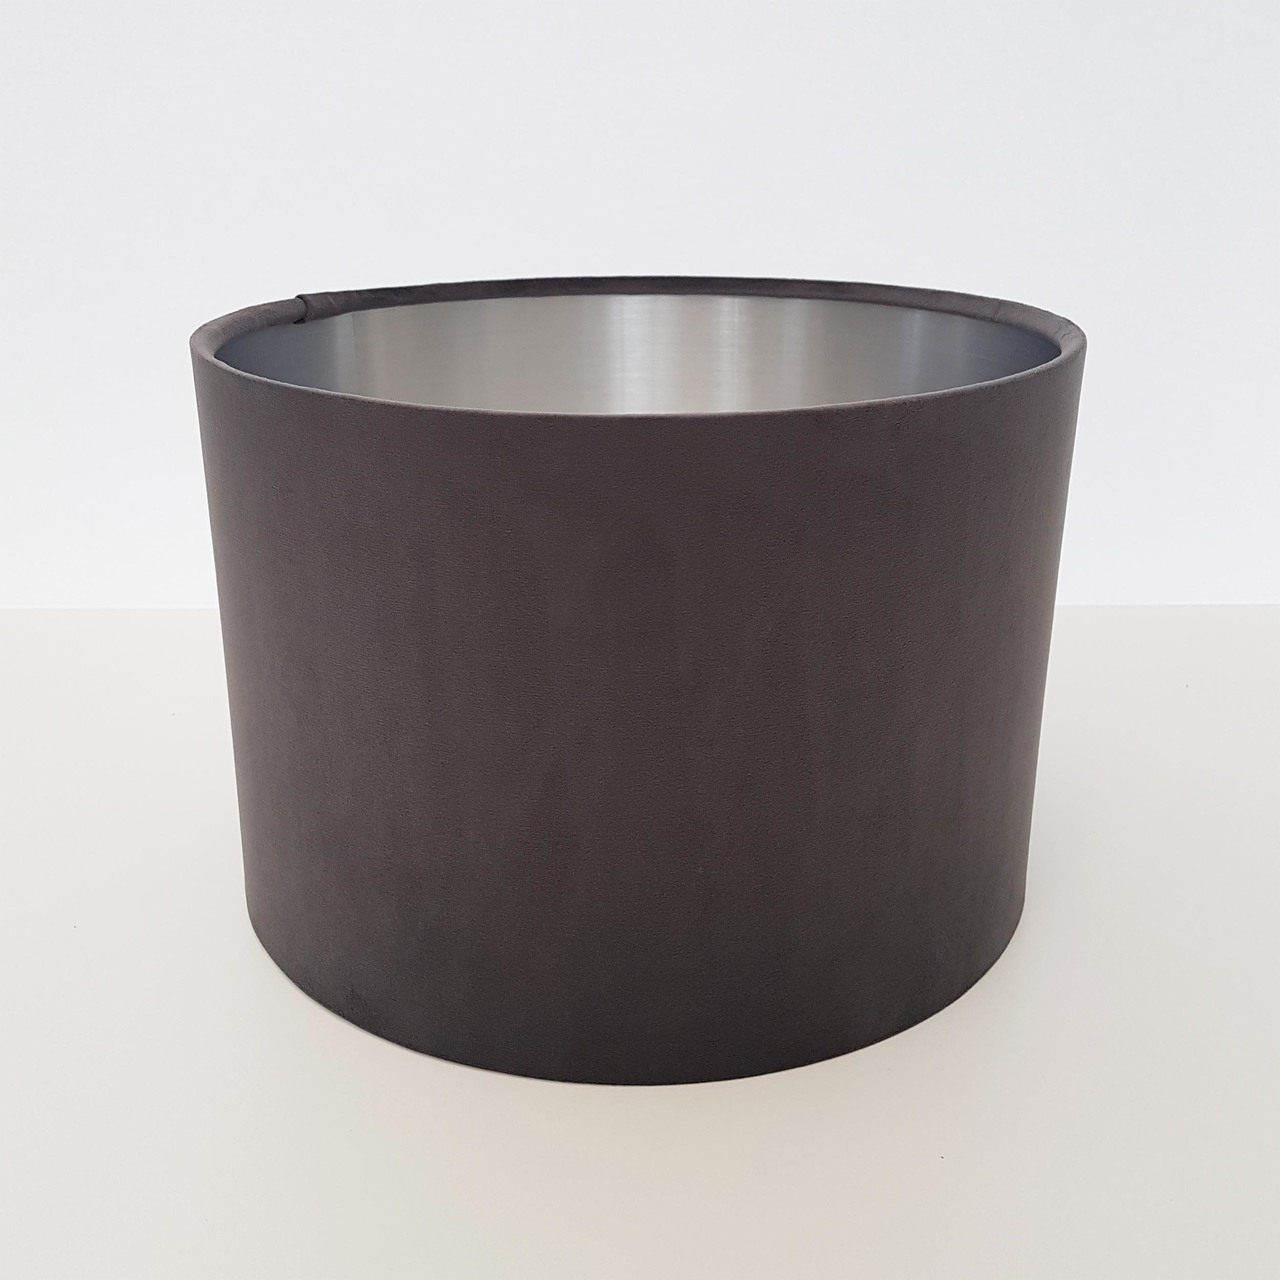 Top View - Charcoal Grey Velvet Lampshade with Silver Lining